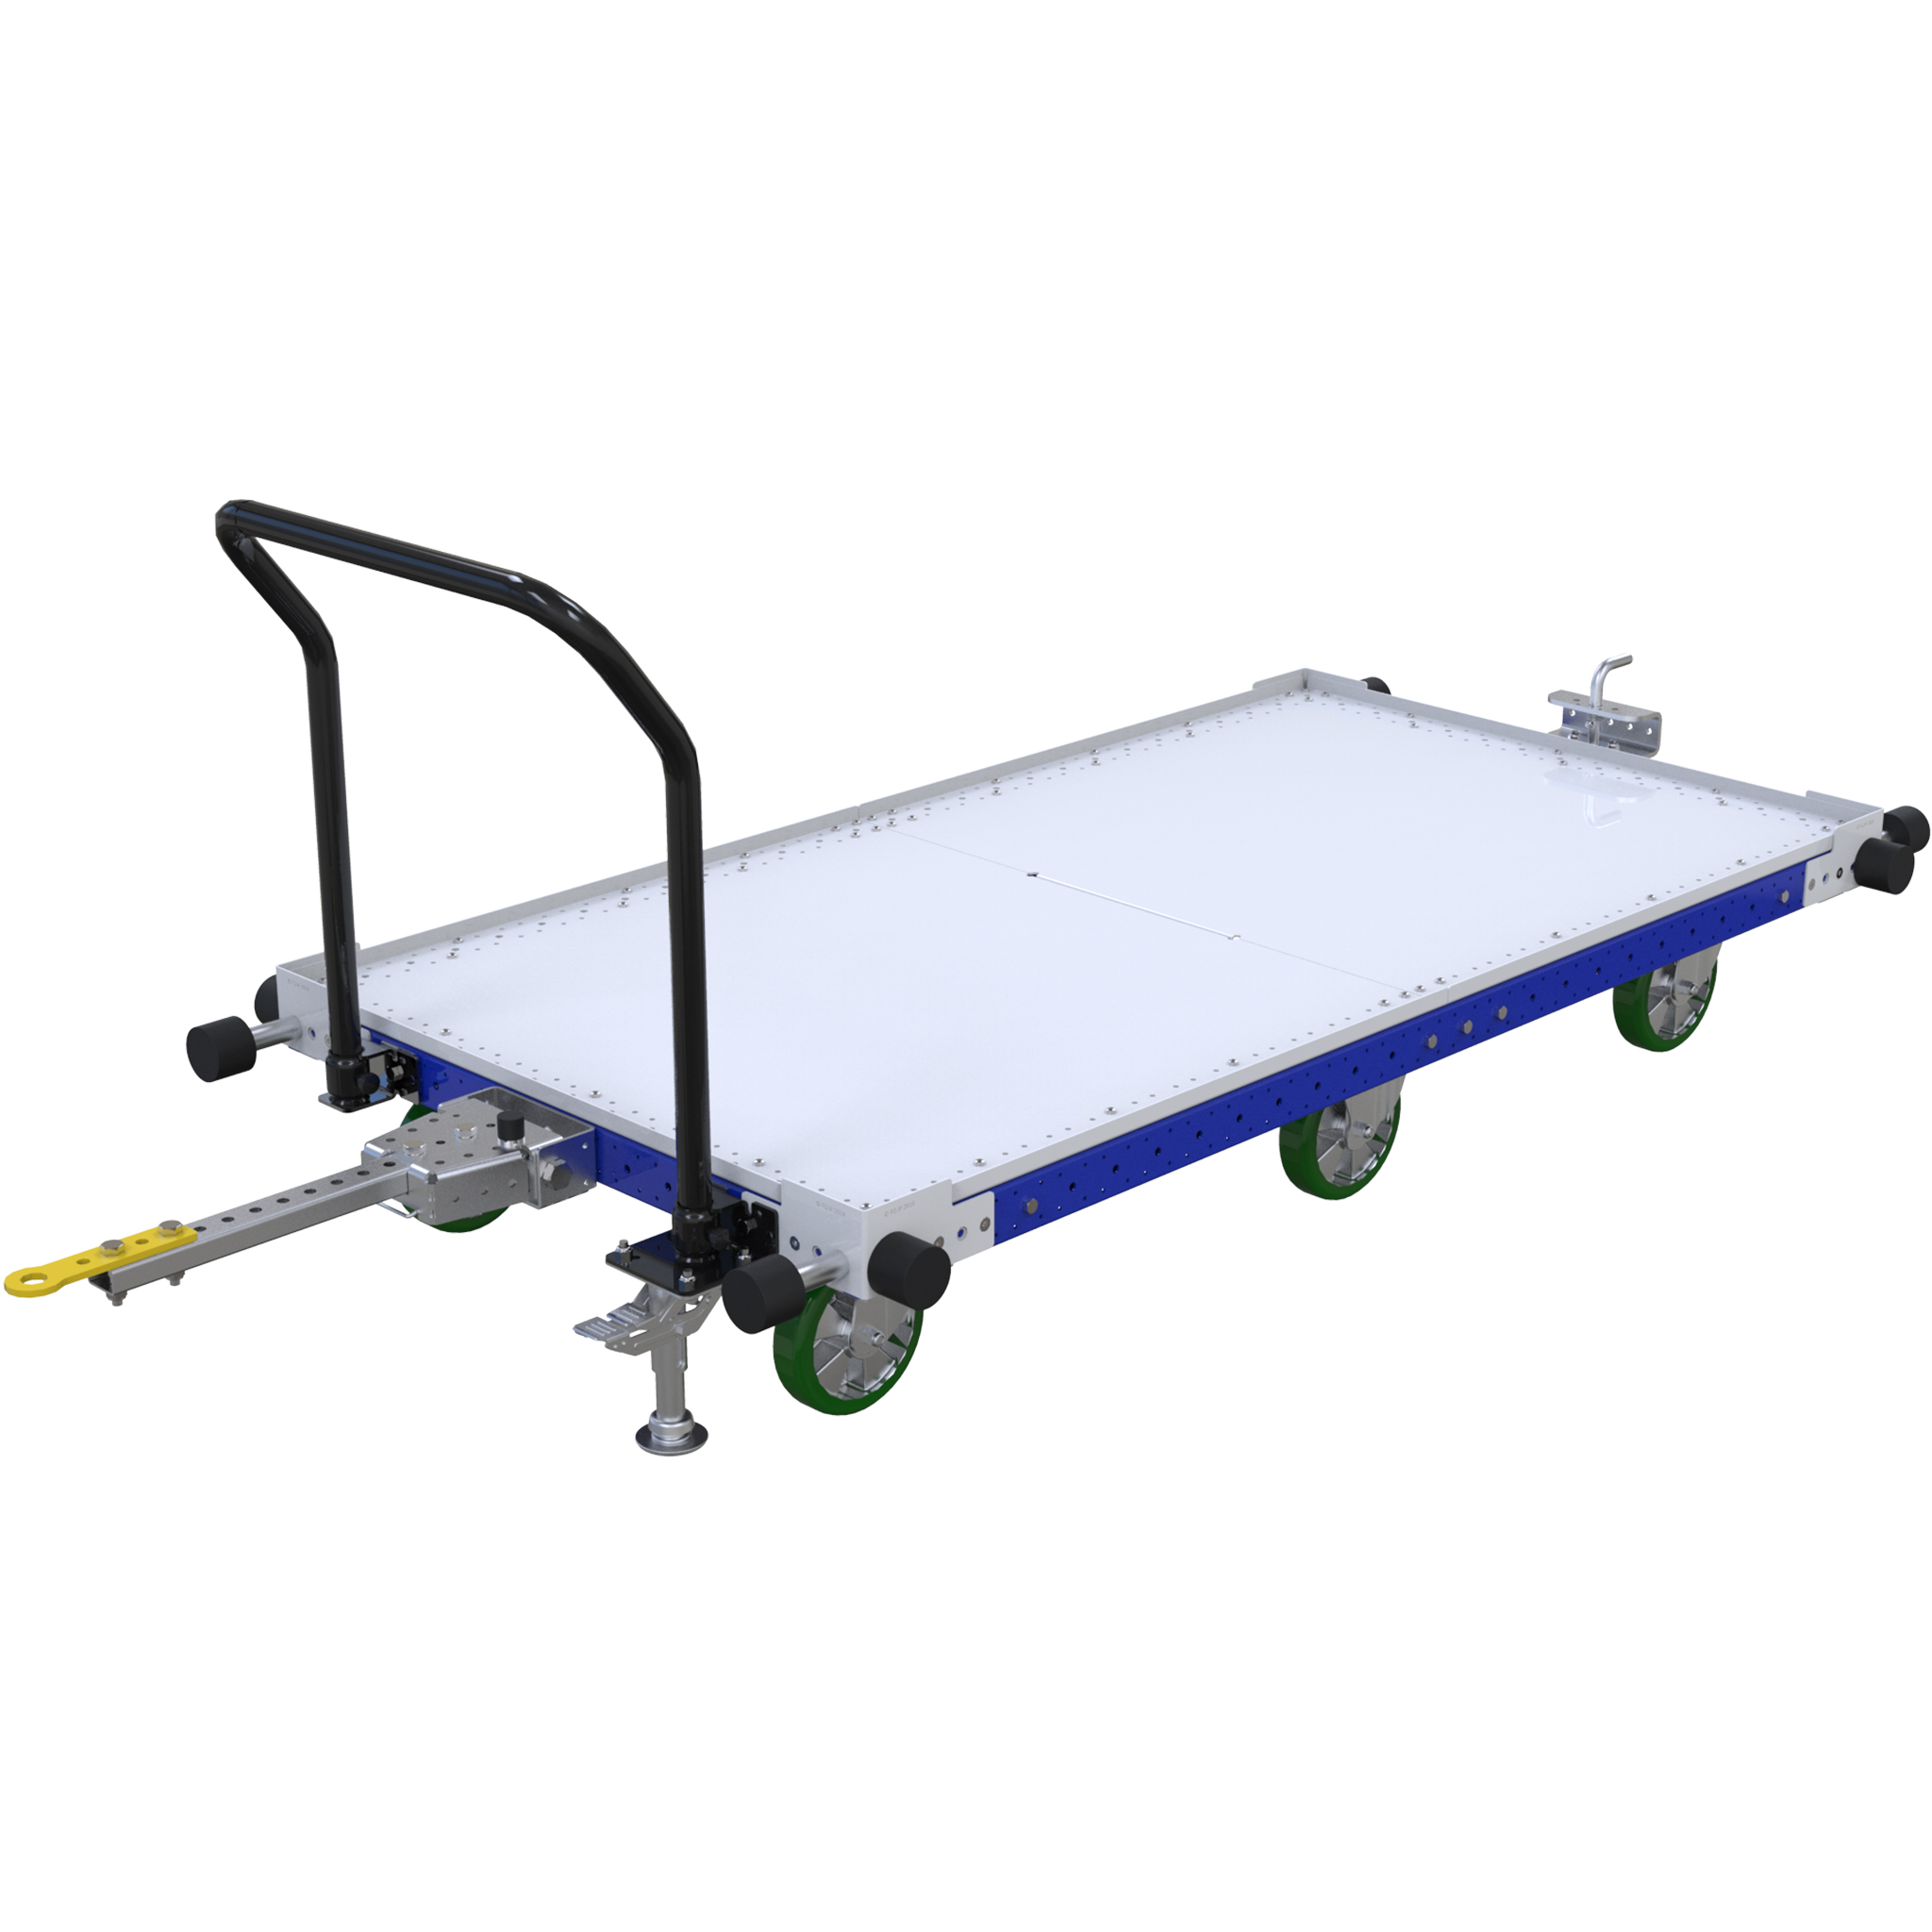 Tugger Pallet Cart - 1050 x 1960 mm